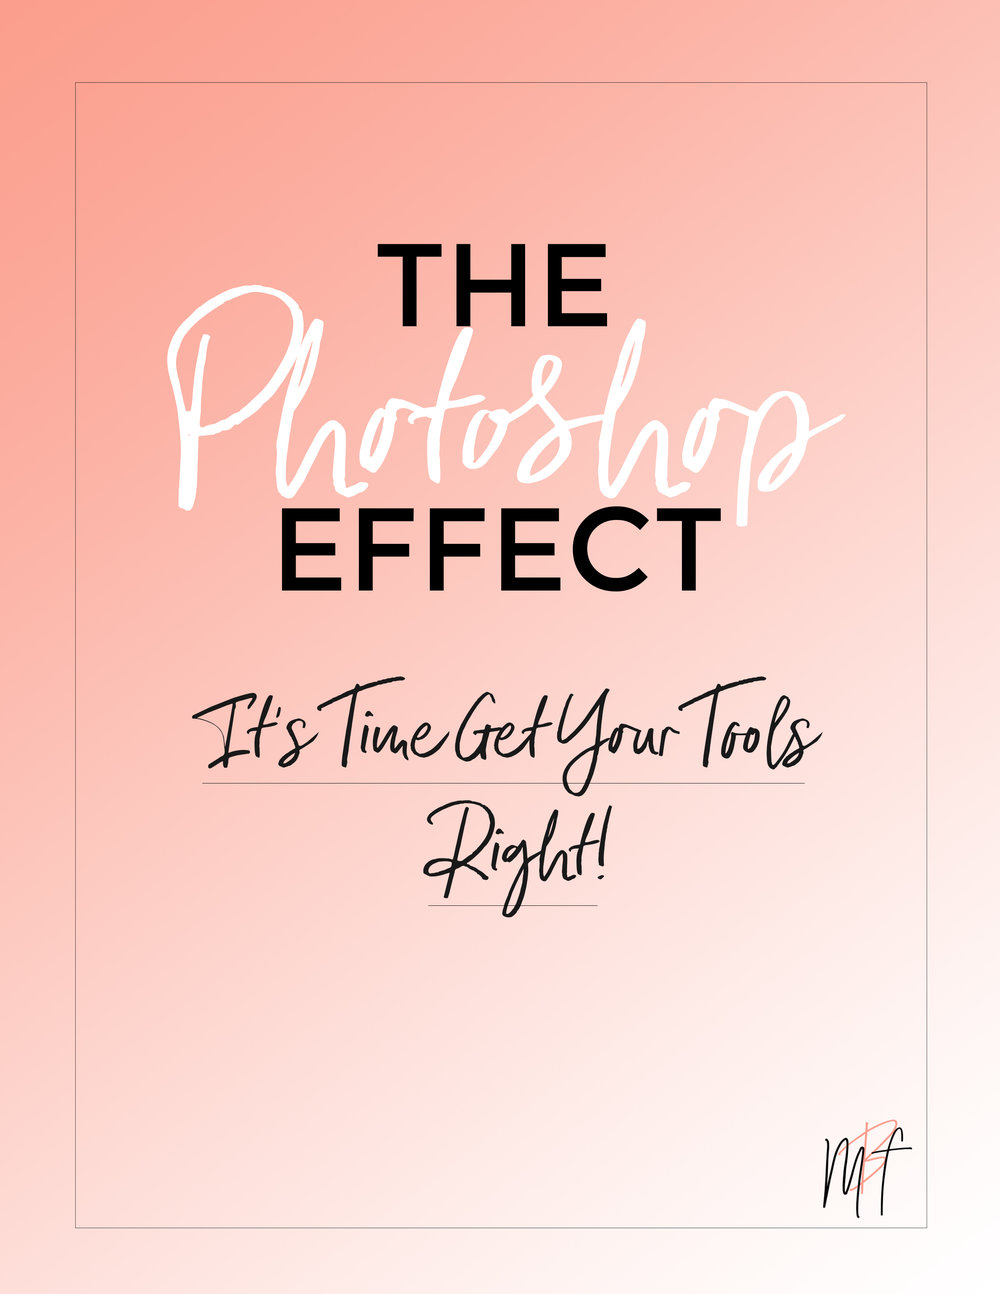 The Photoshop Effect- This is for creative entrepreneur and bloggers looking to step up their visuals and learn how to use photoshop to save time and make killer graphics. Click to join us for class!